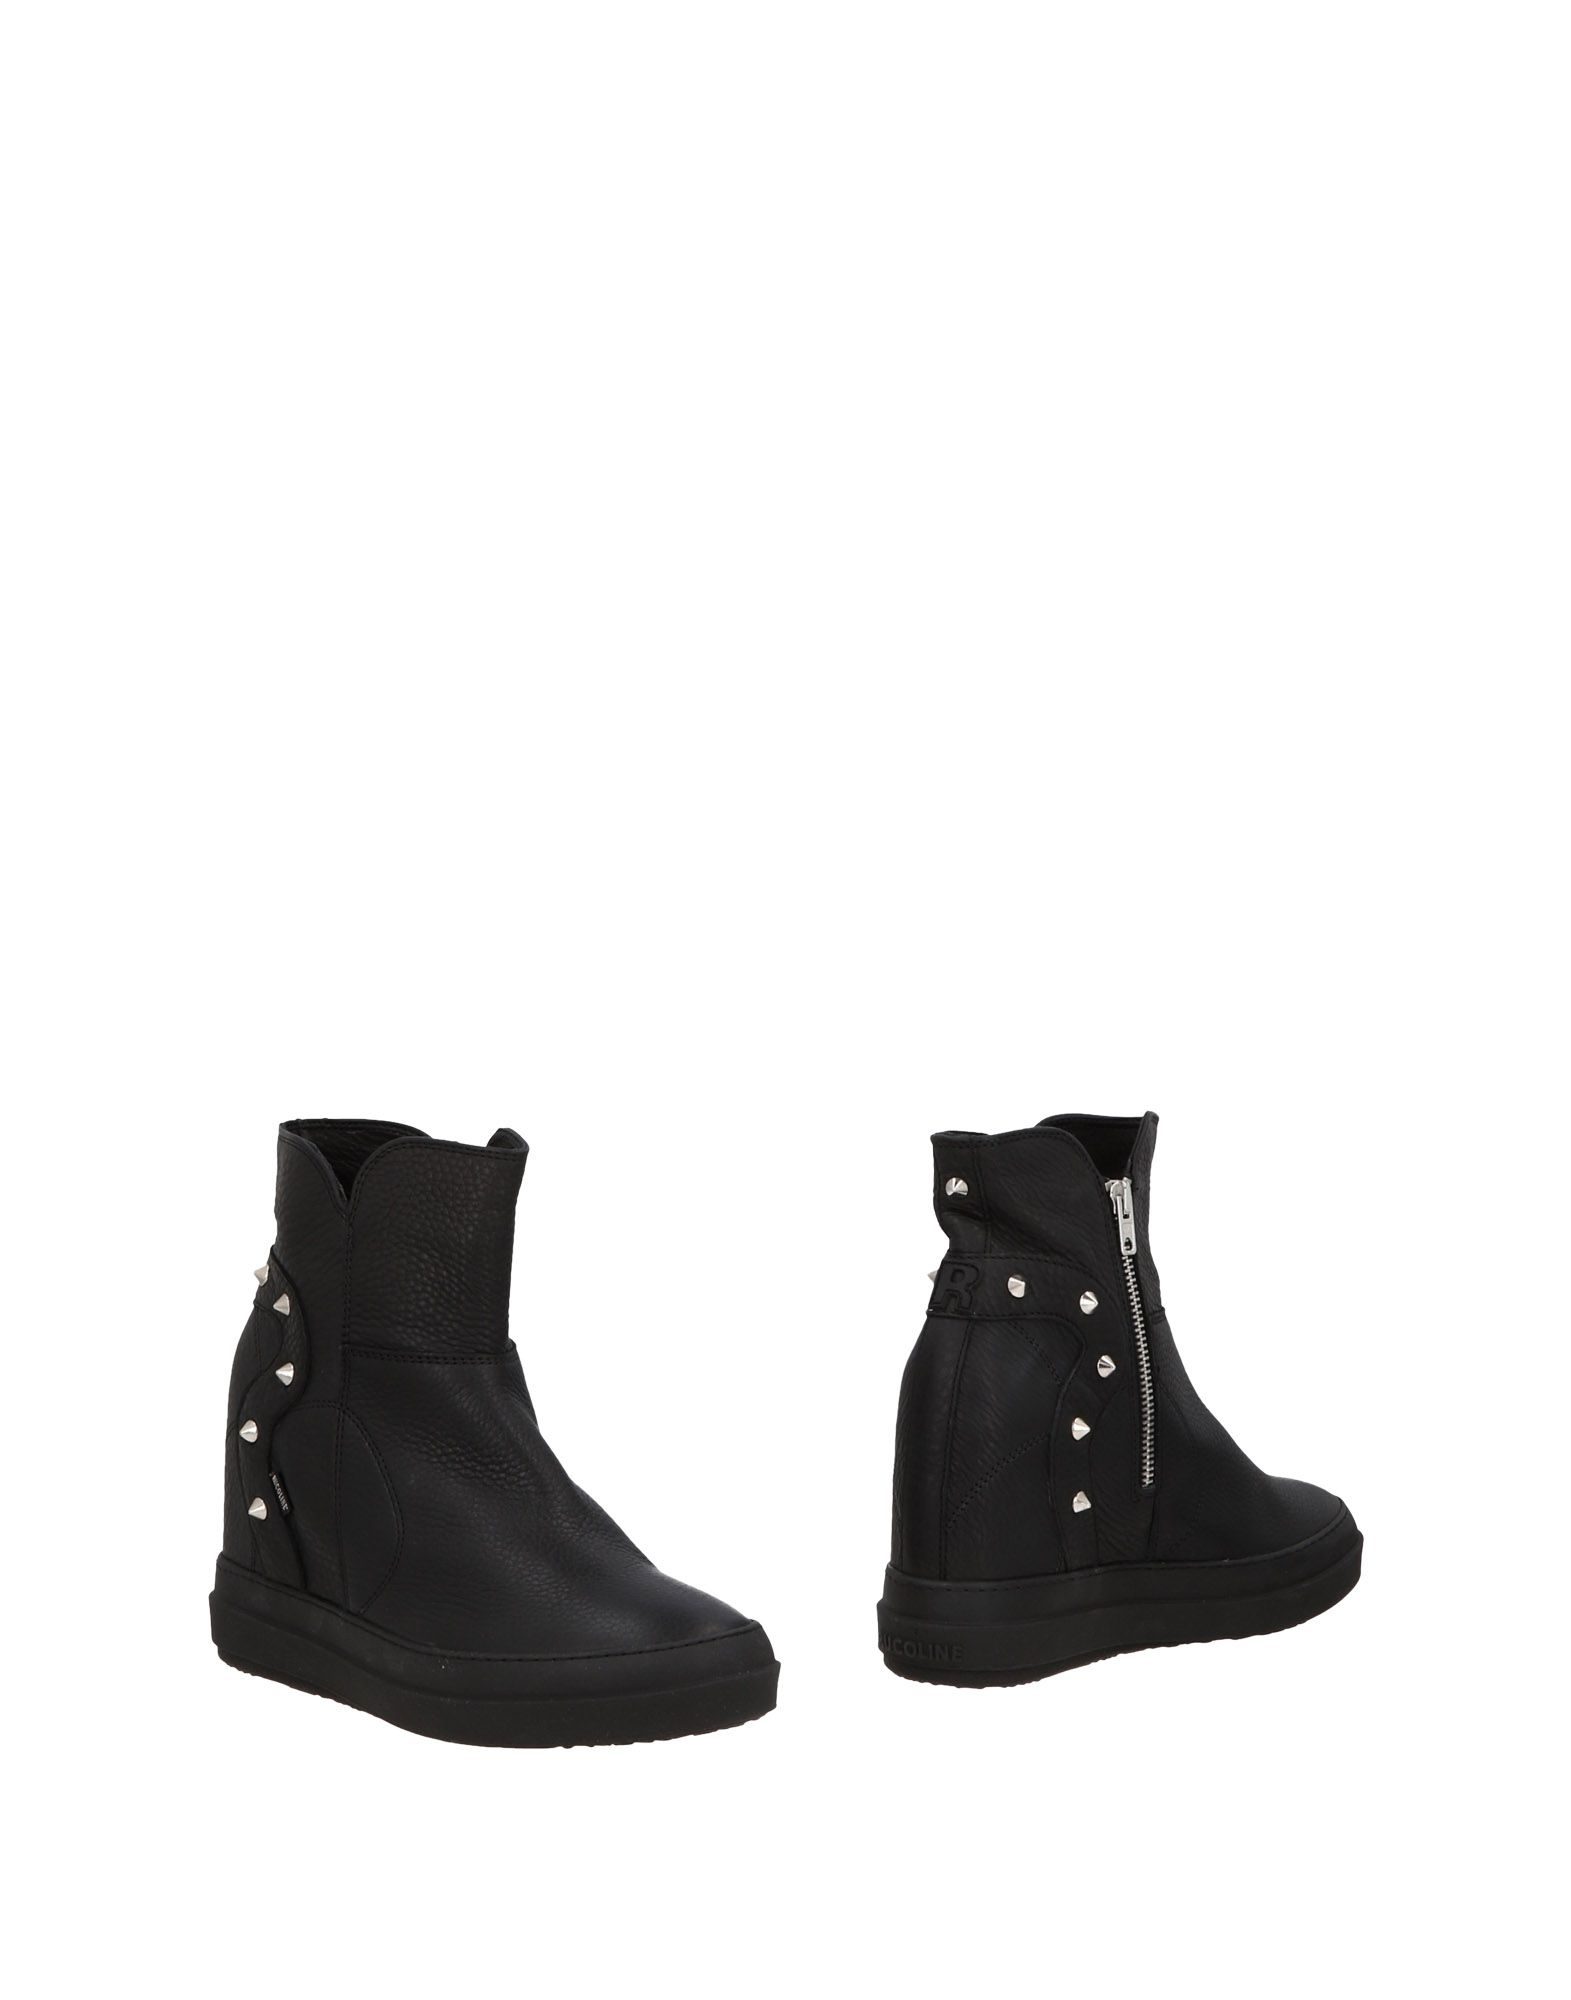 Ruco Line Ankle Boot Ankle - Women Ruco Line Ankle Boot Boots online on  Canada - 11476890FK 1a9a94